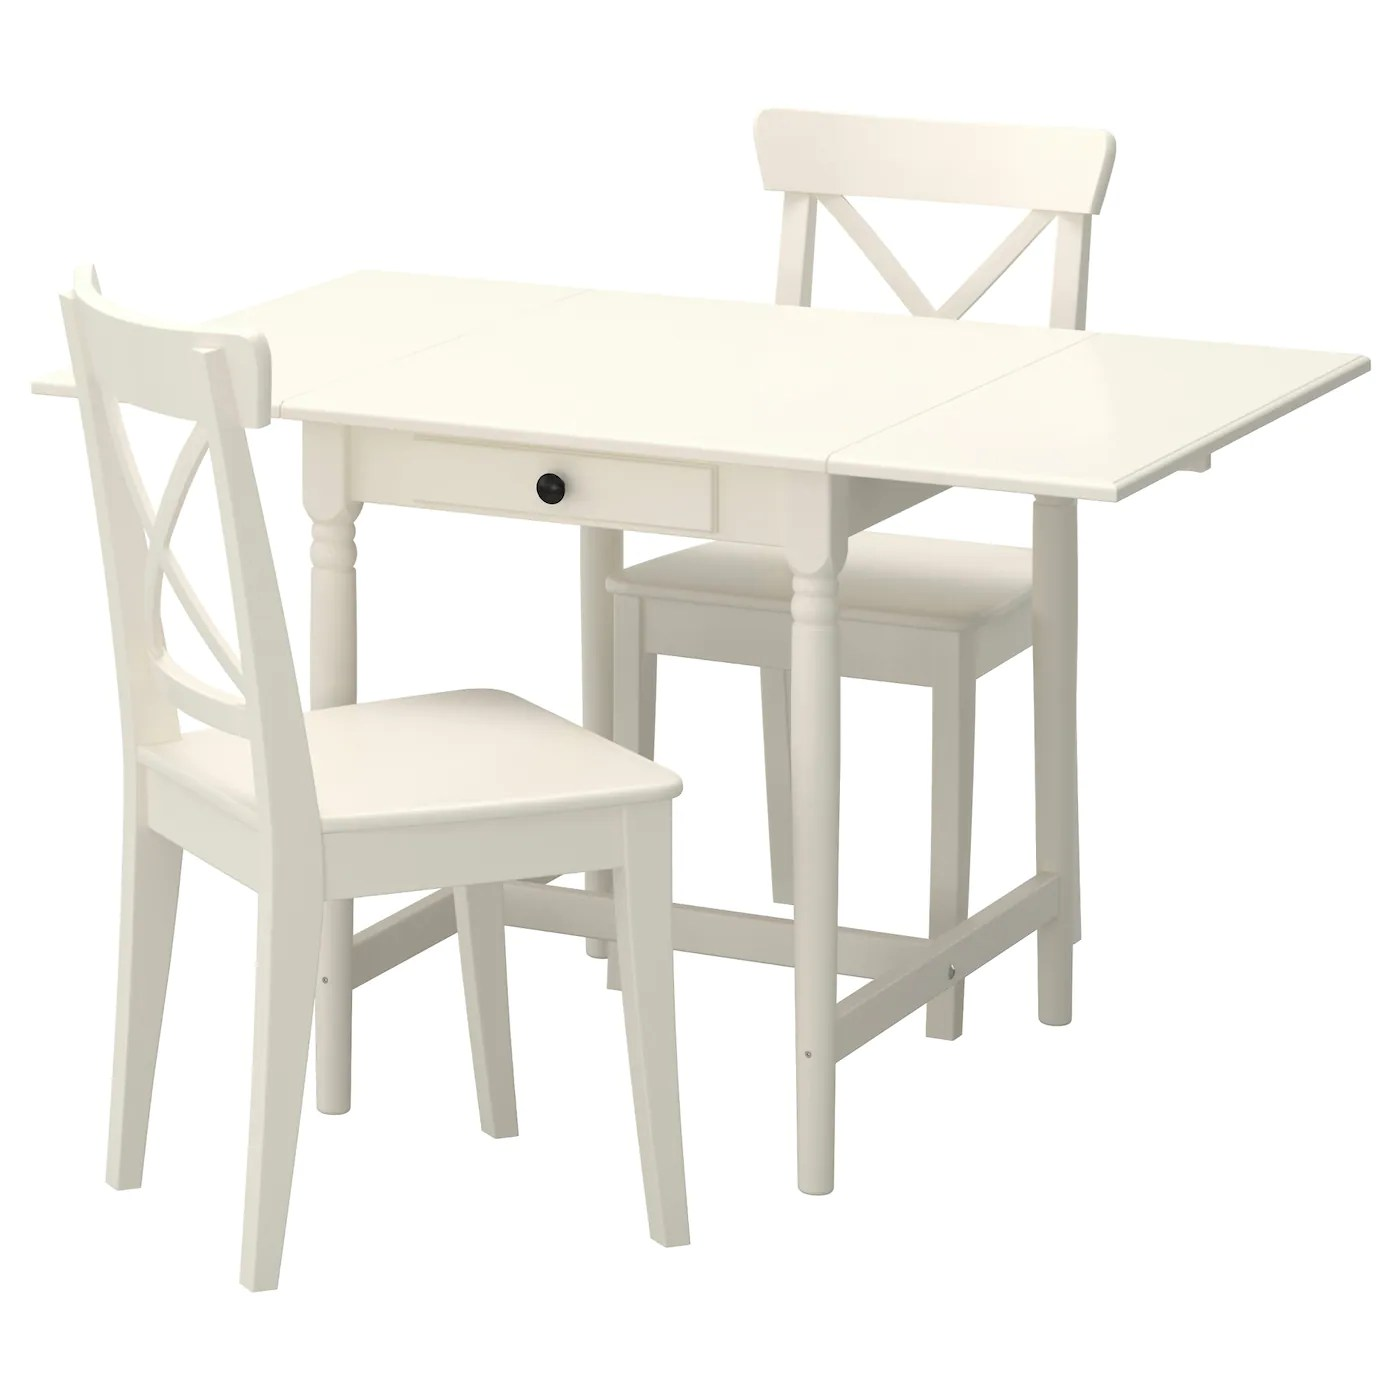 Table With Two Chairs Small Dining Table Sets 2 Seater Dining Table And Chairs